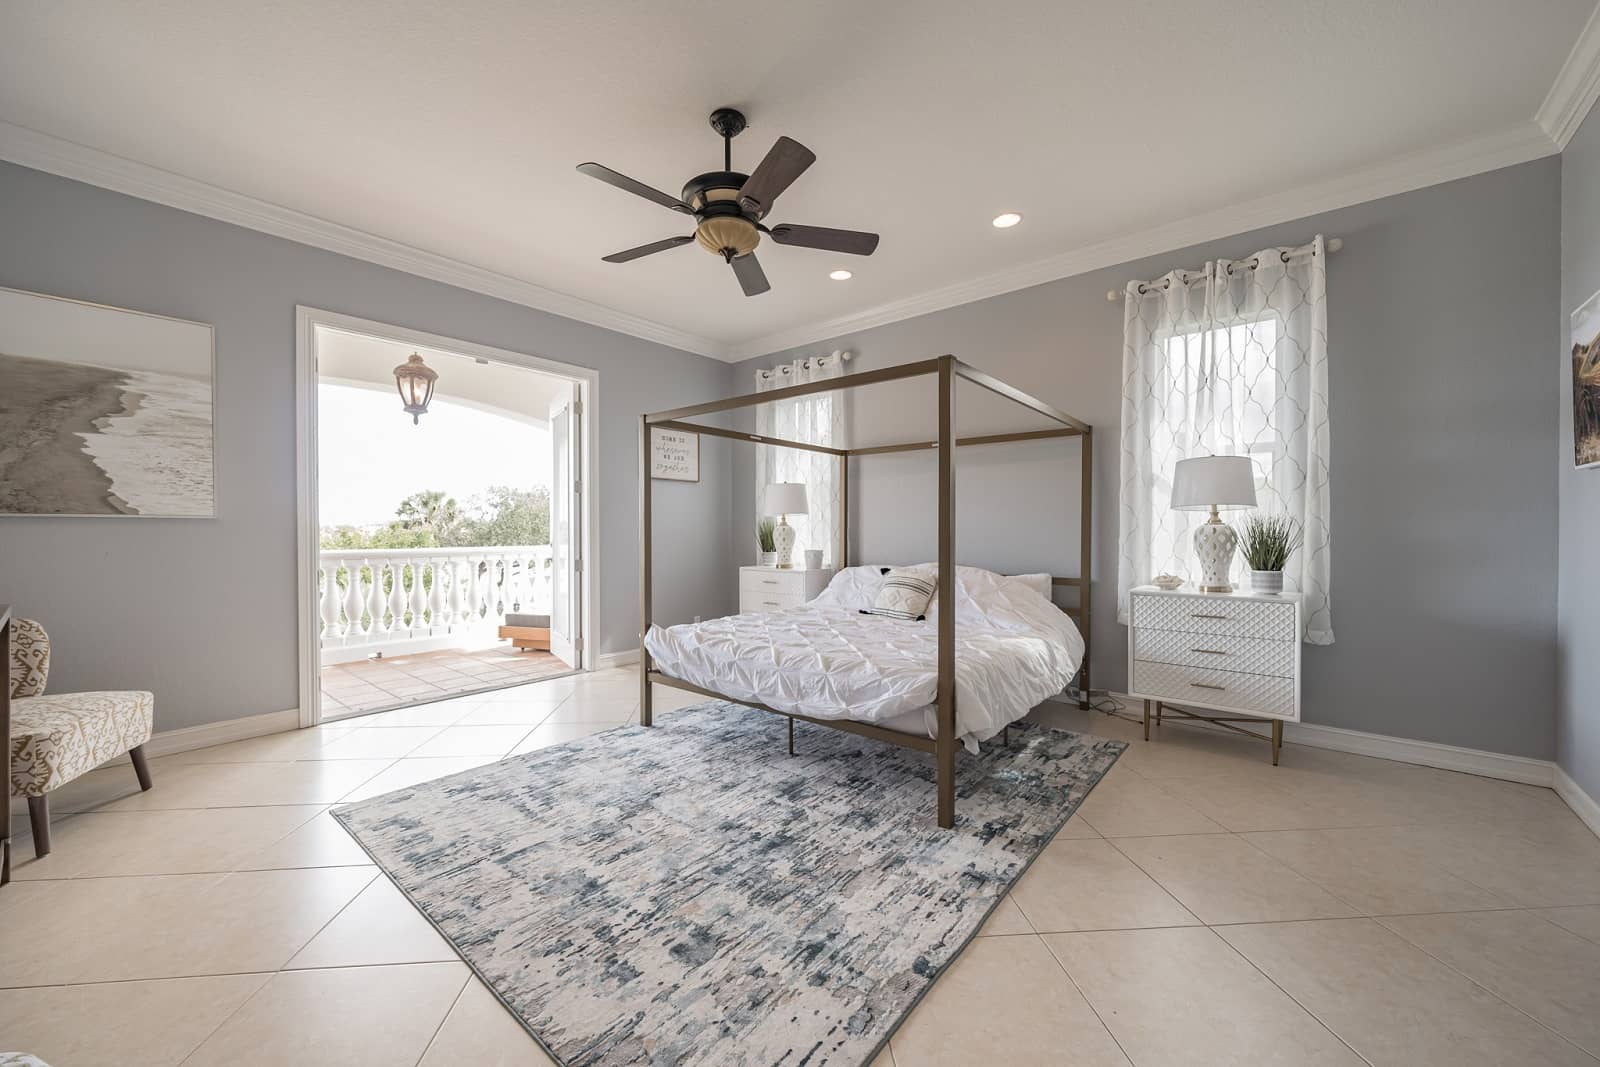 Real Estate Photography in Port St. Lucie - FL - USA - Bedroom View